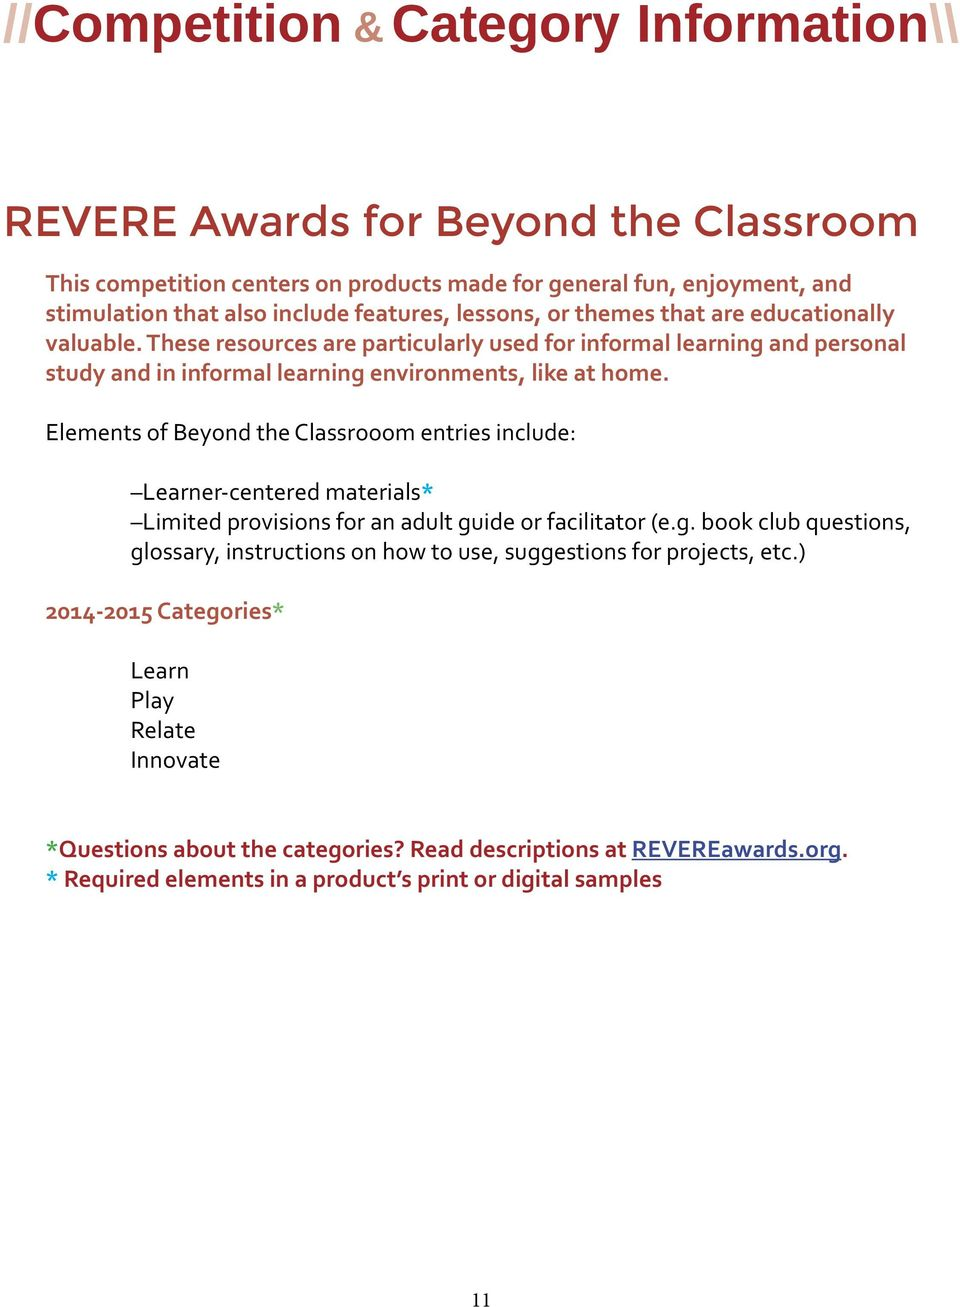 Elements of Beyond the Classrooom entries include: Learner-centered materials* Limited provisions for an adult gu